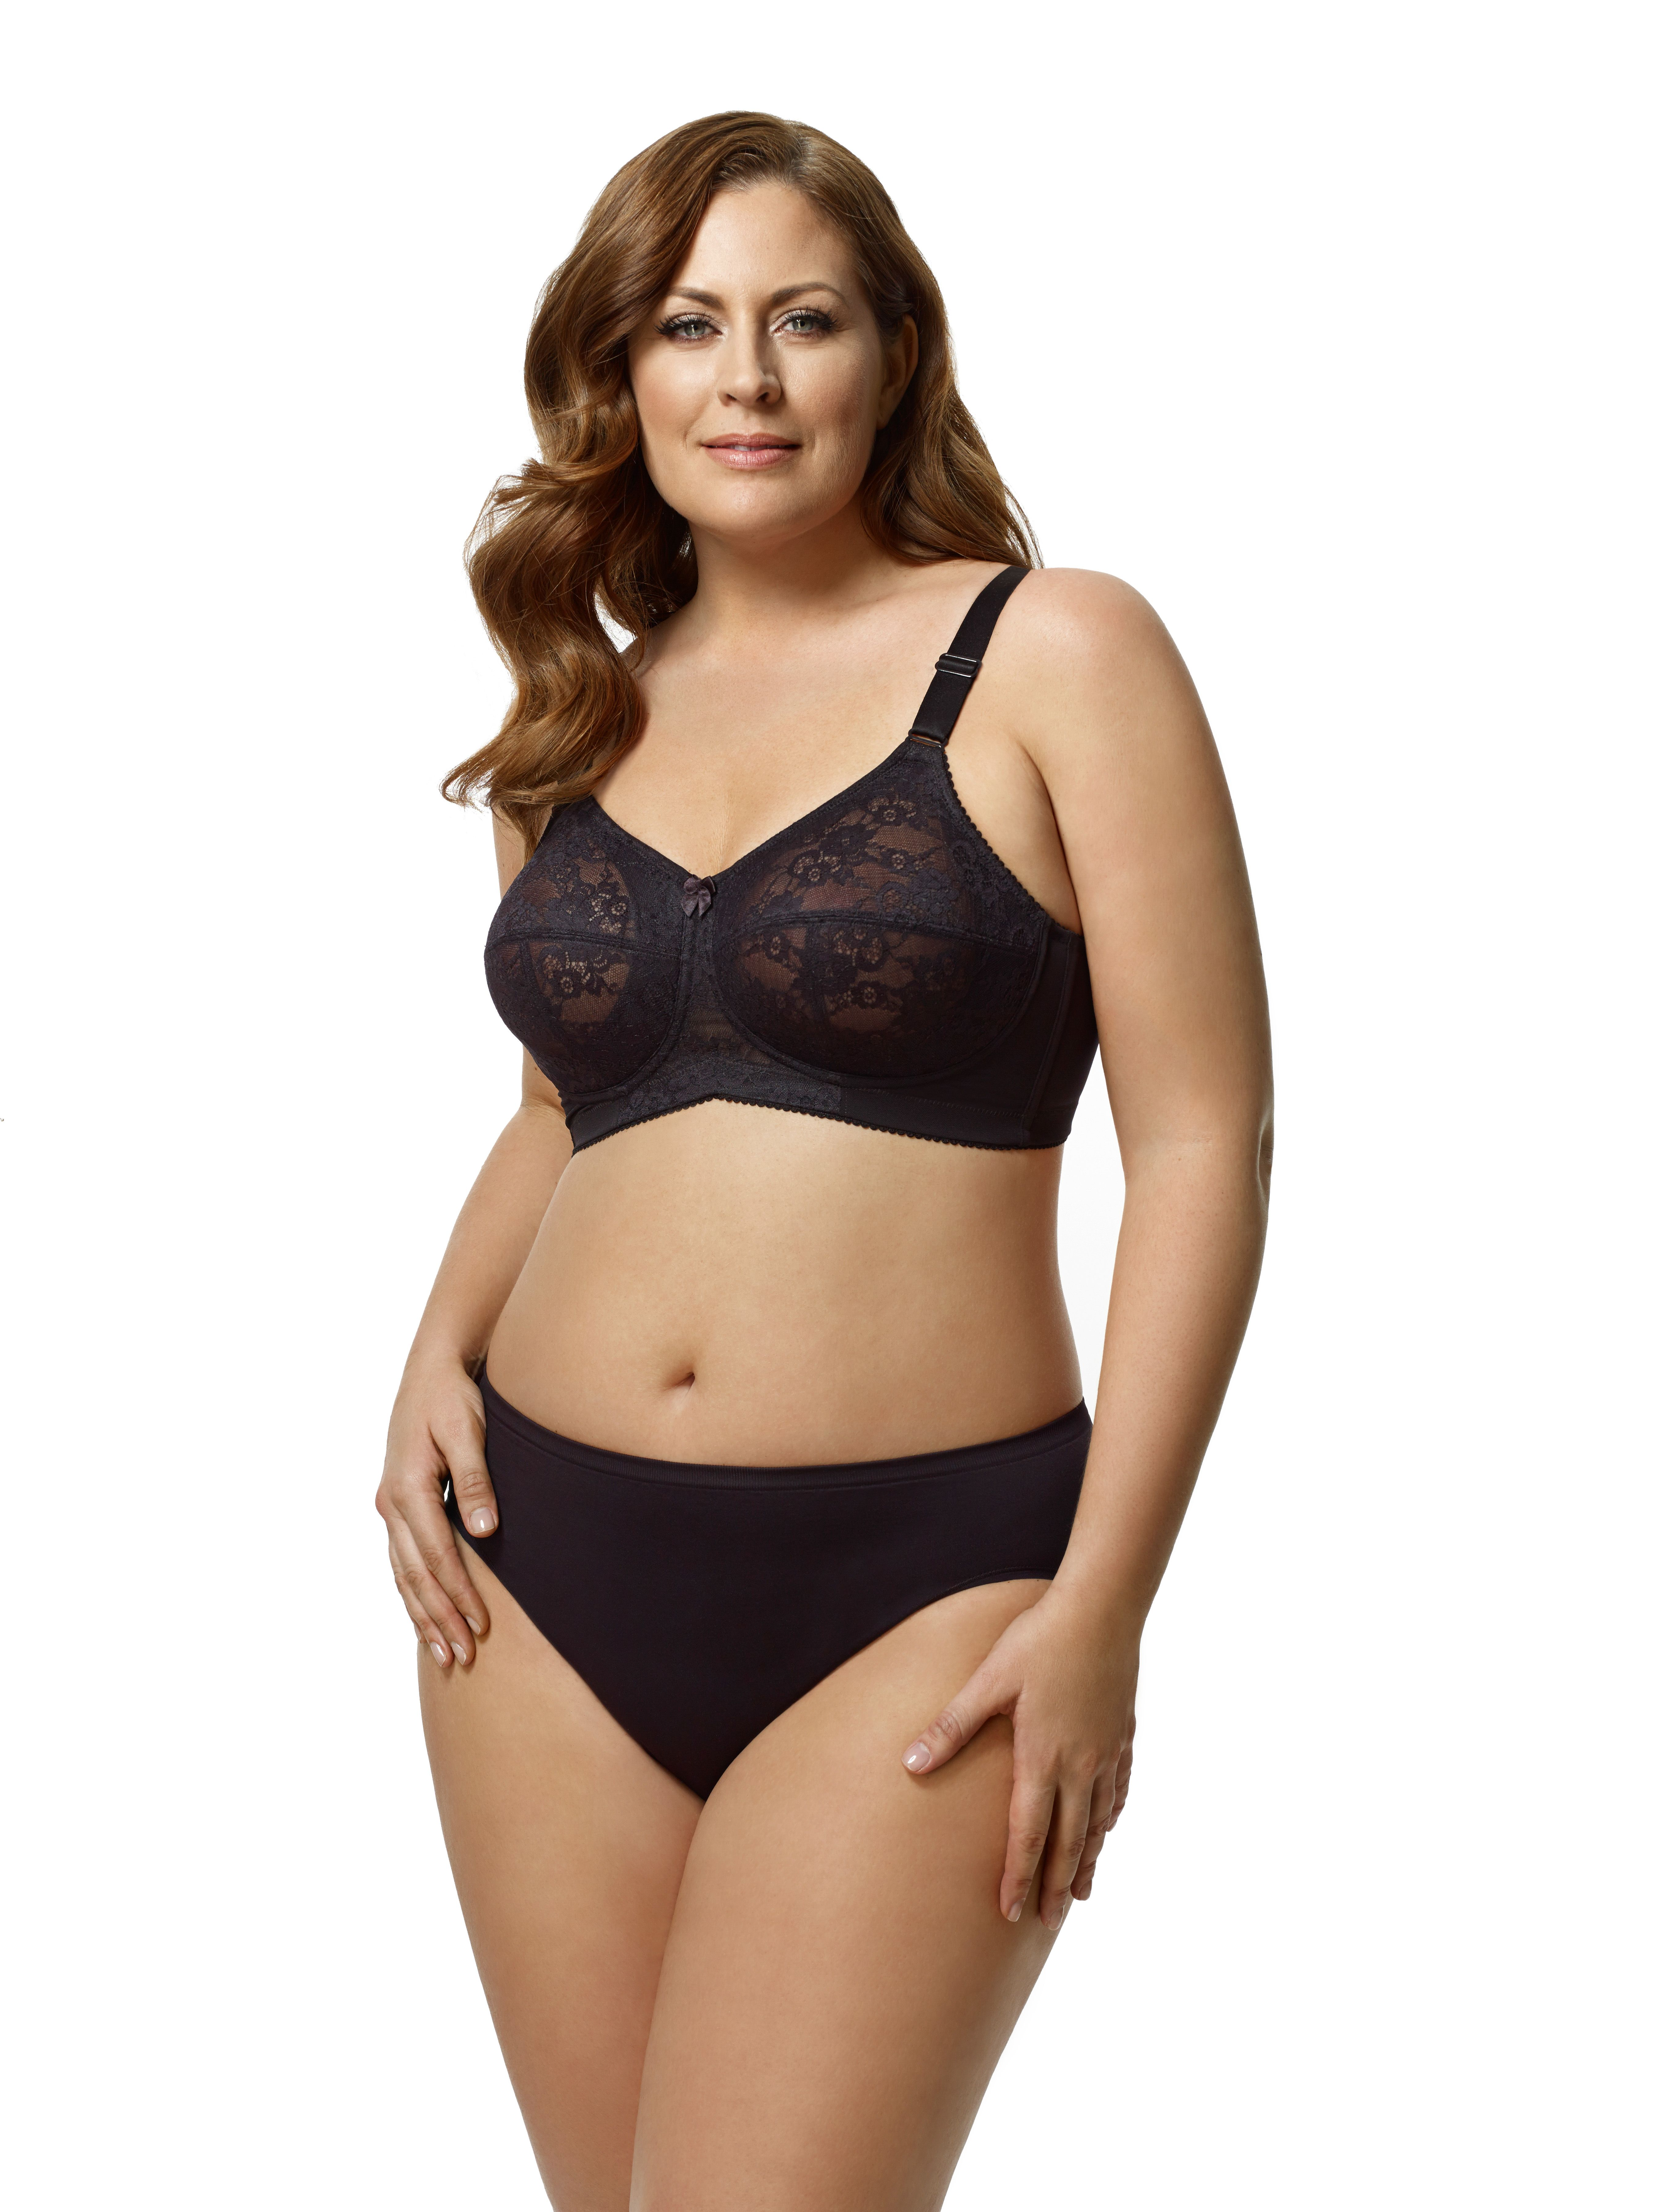 f7b4011e6e Bra Trends from brands around the world. Lace Softcup in Black